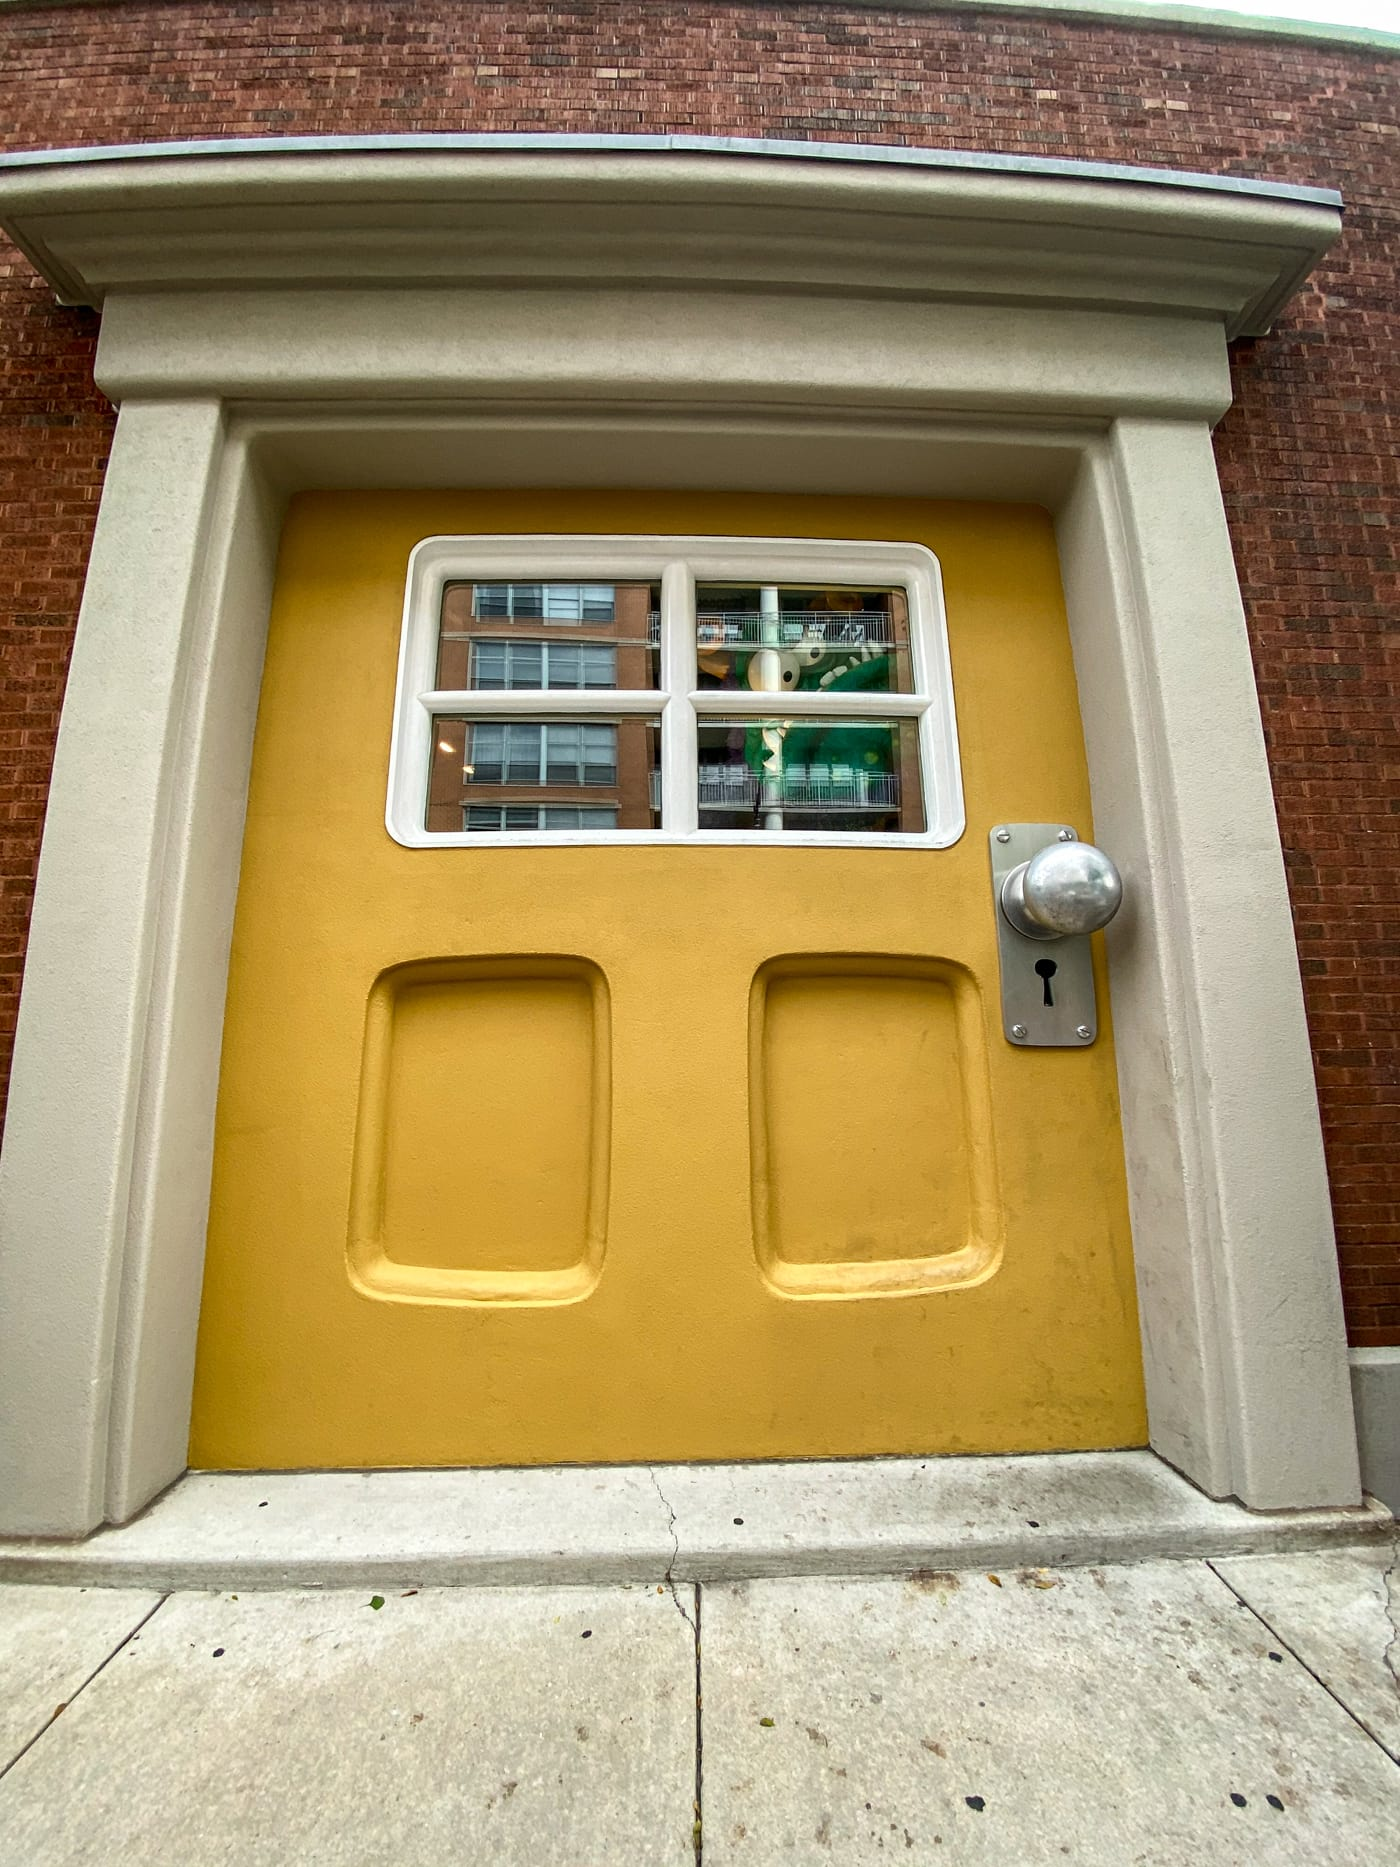 Big Monster Door at Big Monster Toys in Chicago, Illinois   A giant yellow door with a monster peeking out the window in the West Loop